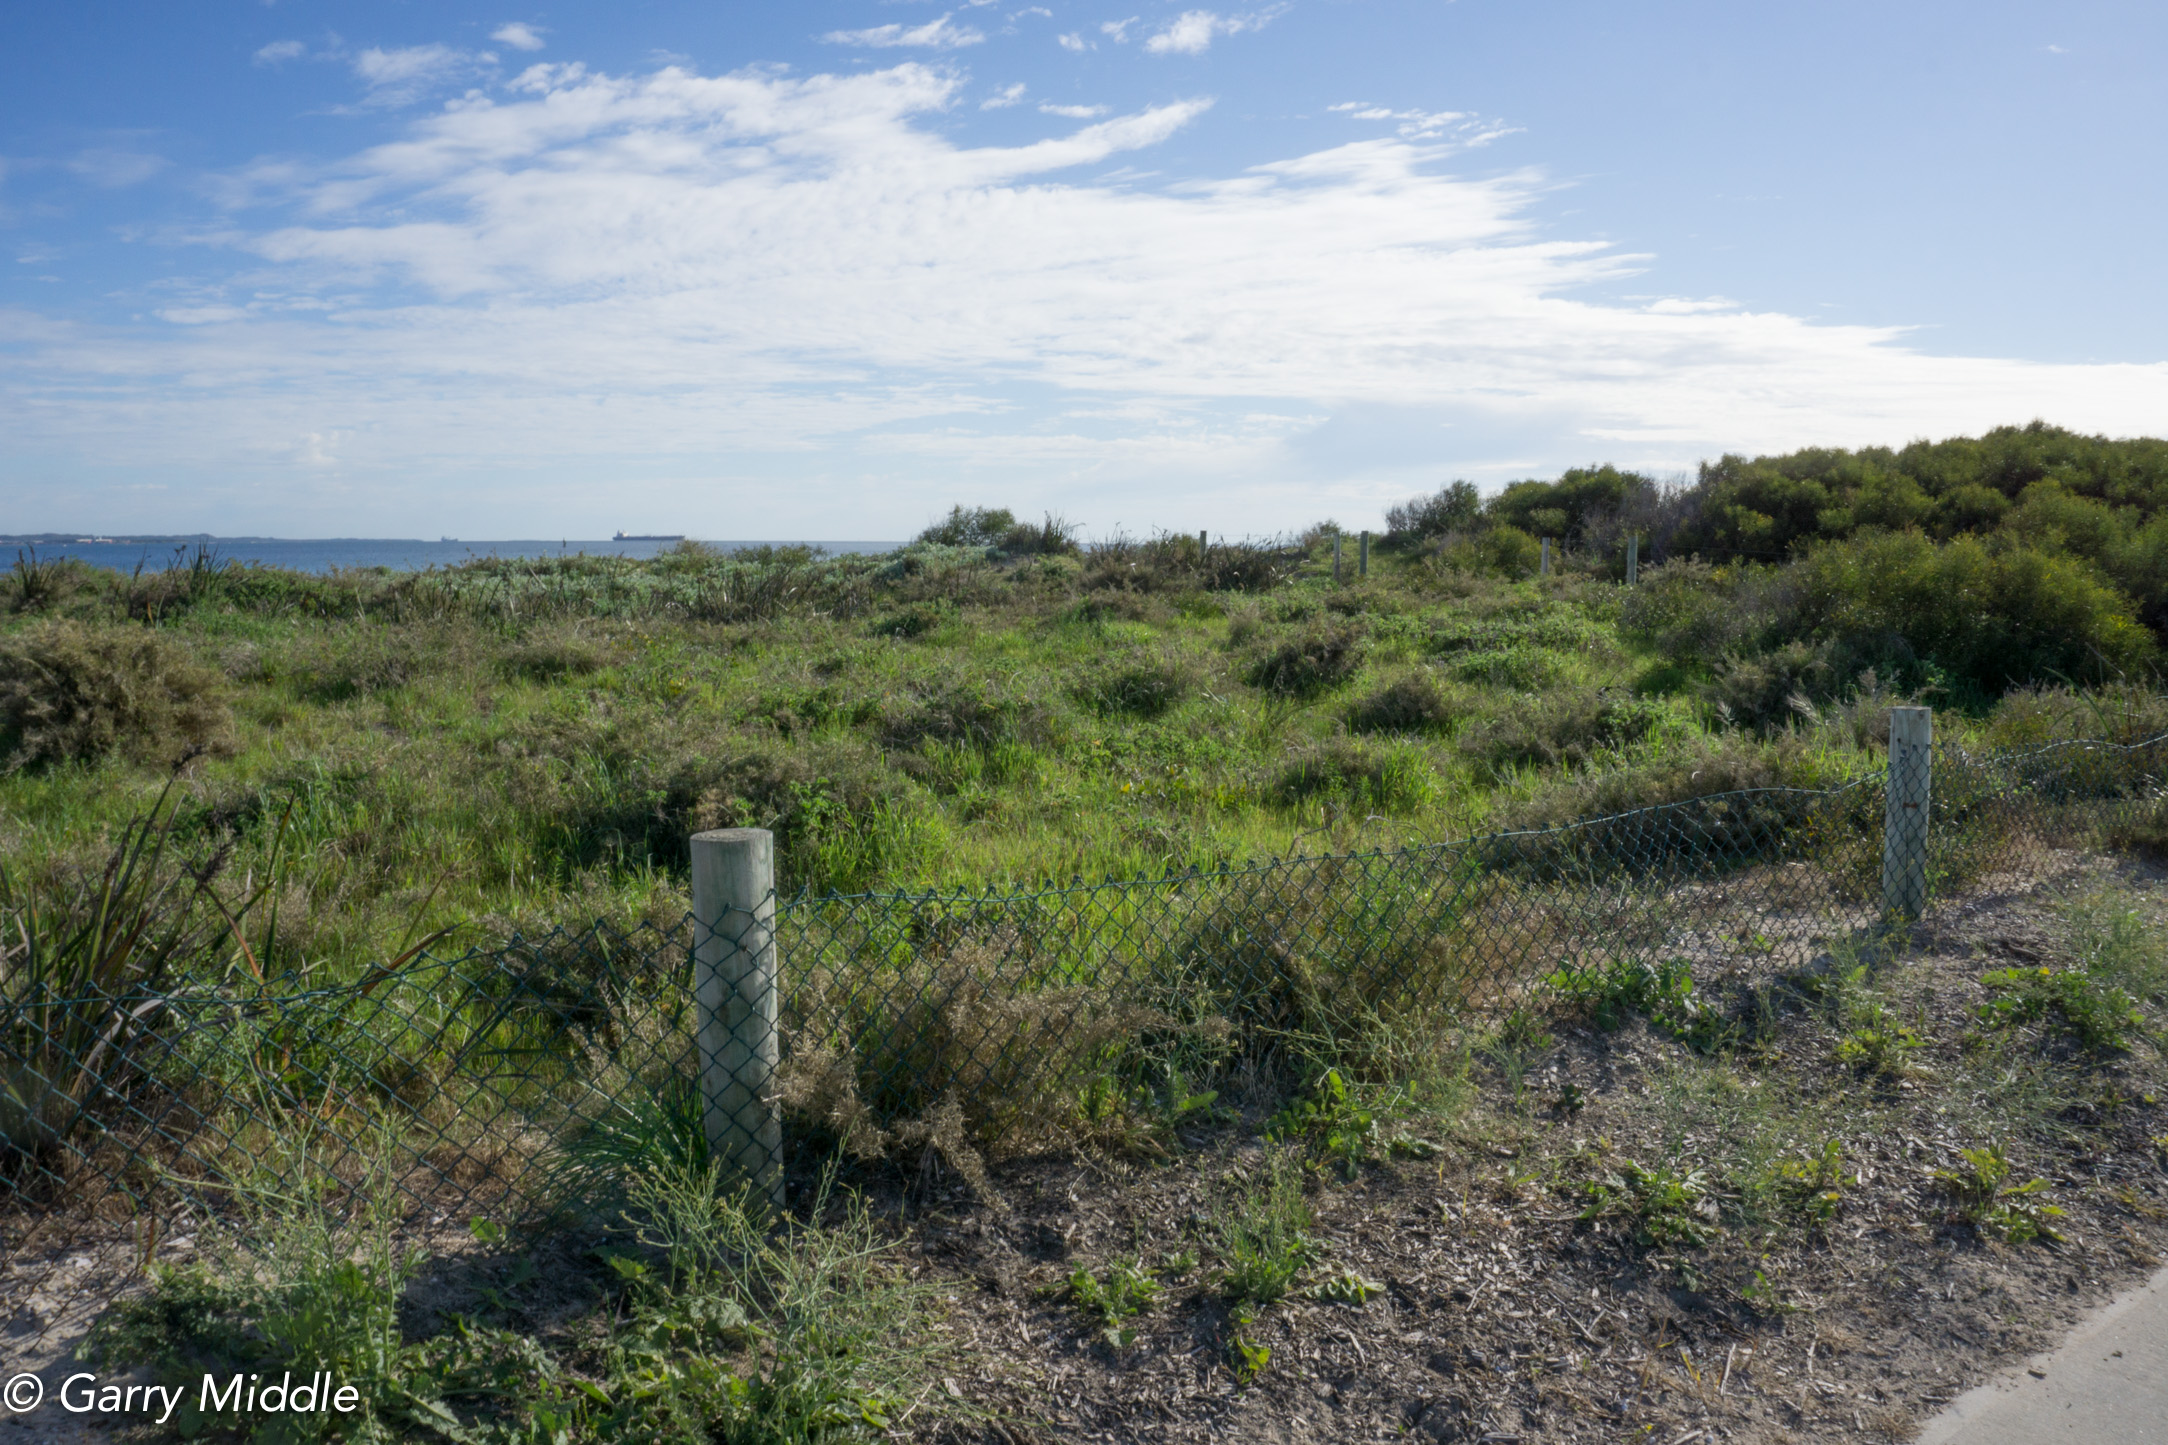 Plate 11: Ocean views from the path where the native vegetation is low enough.